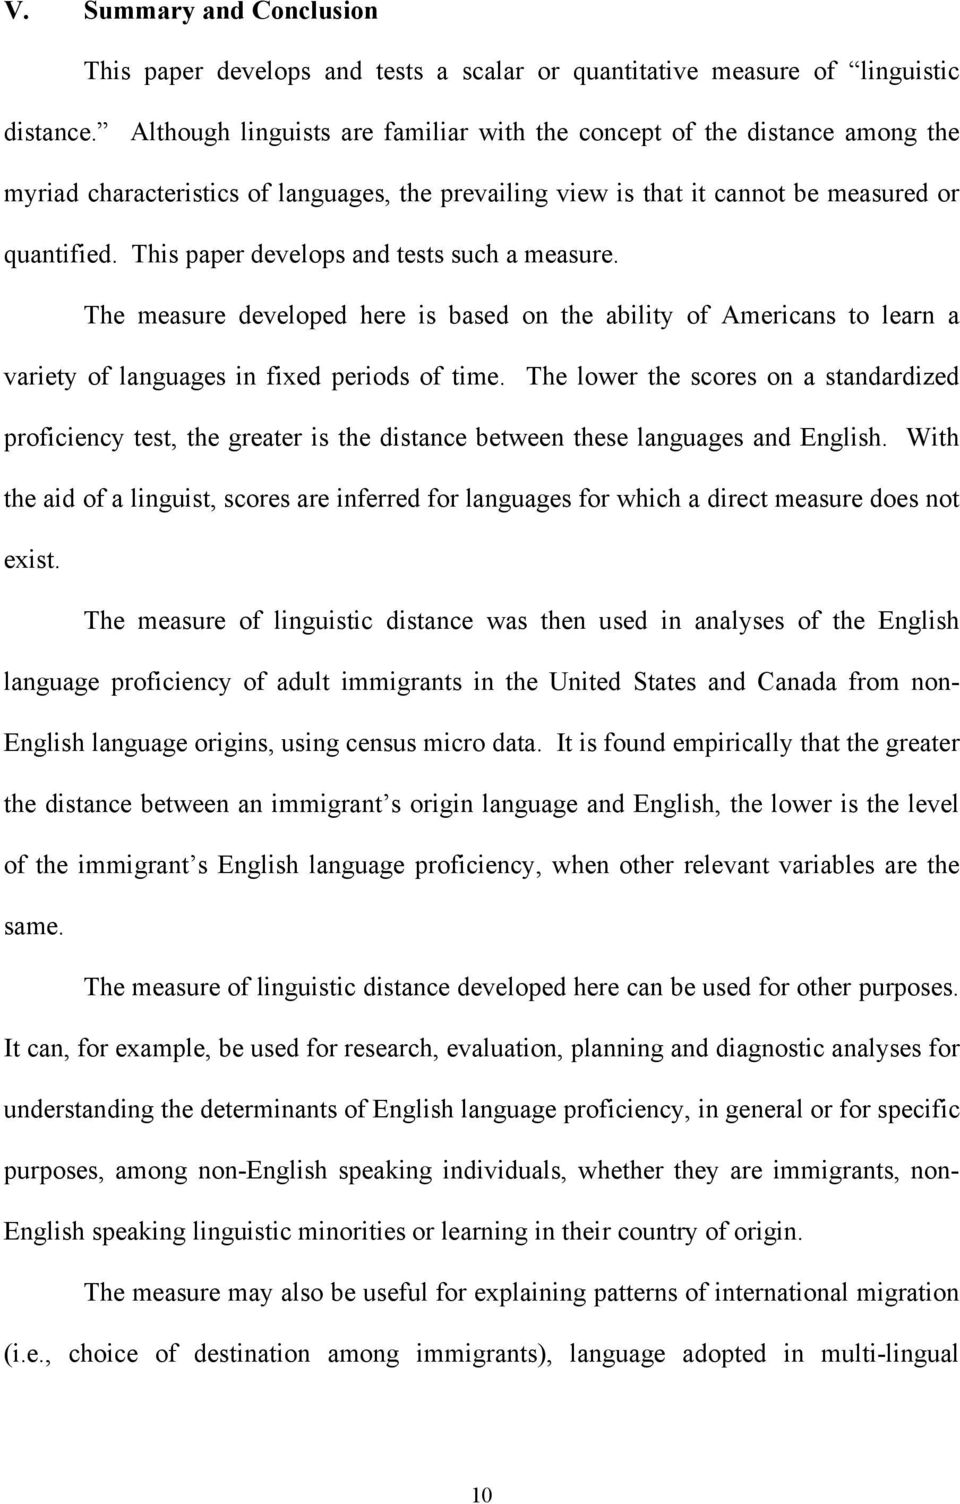 This paper develops and tests such a measure. The measure developed here is based on the ability of Americans to learn a variety of languages in fixed periods of time.